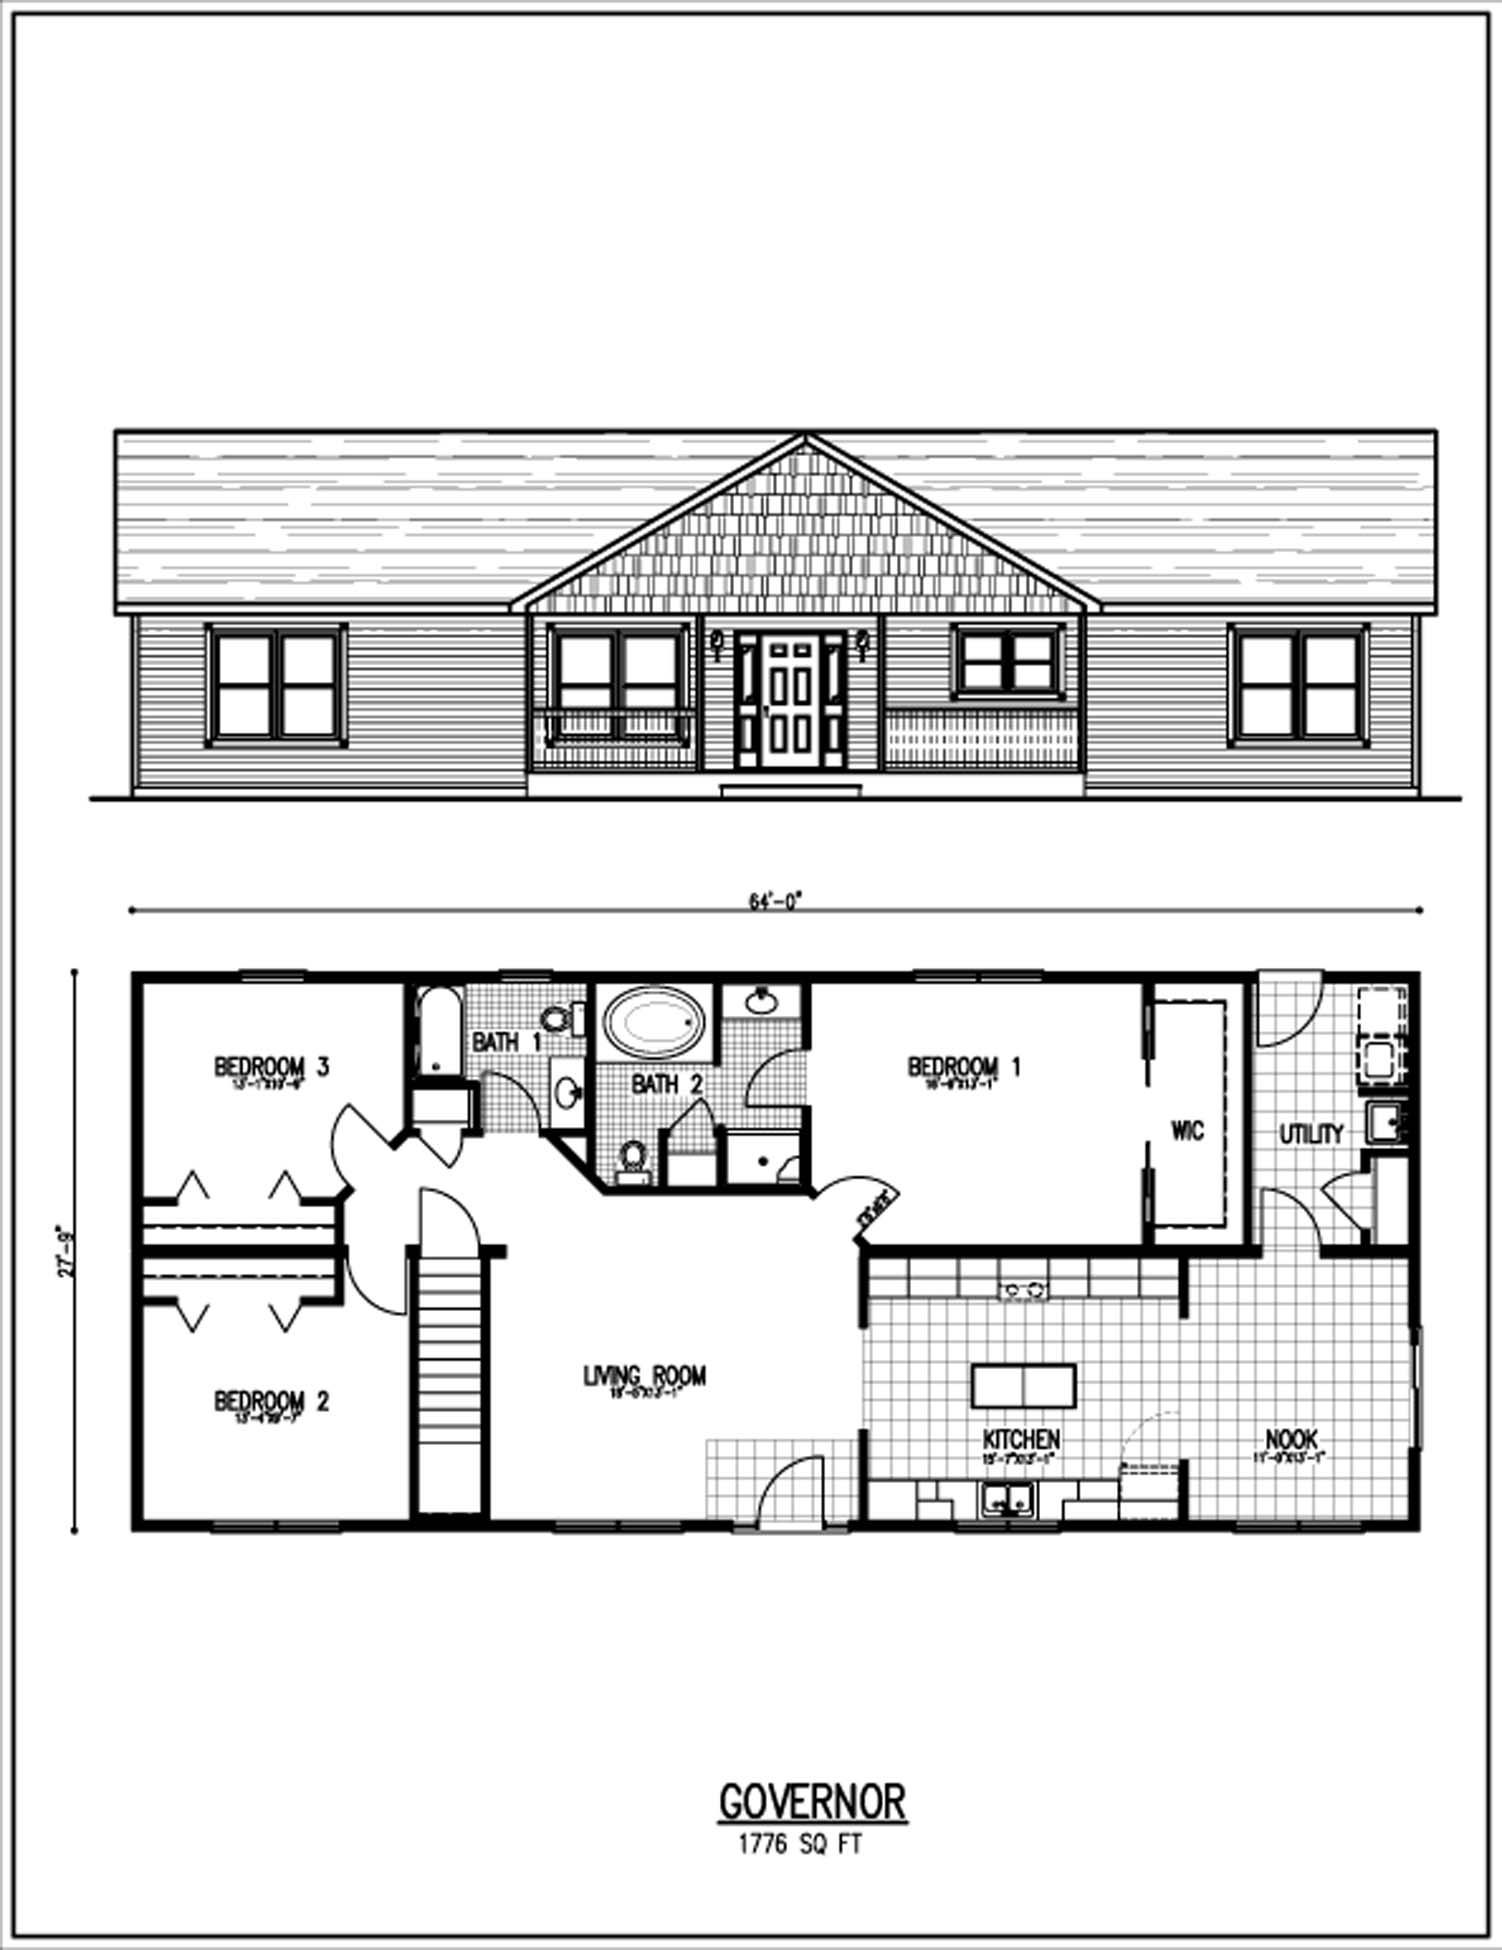 Floor plans by shawam082498 on pinterest floor plans for Floor plan layout